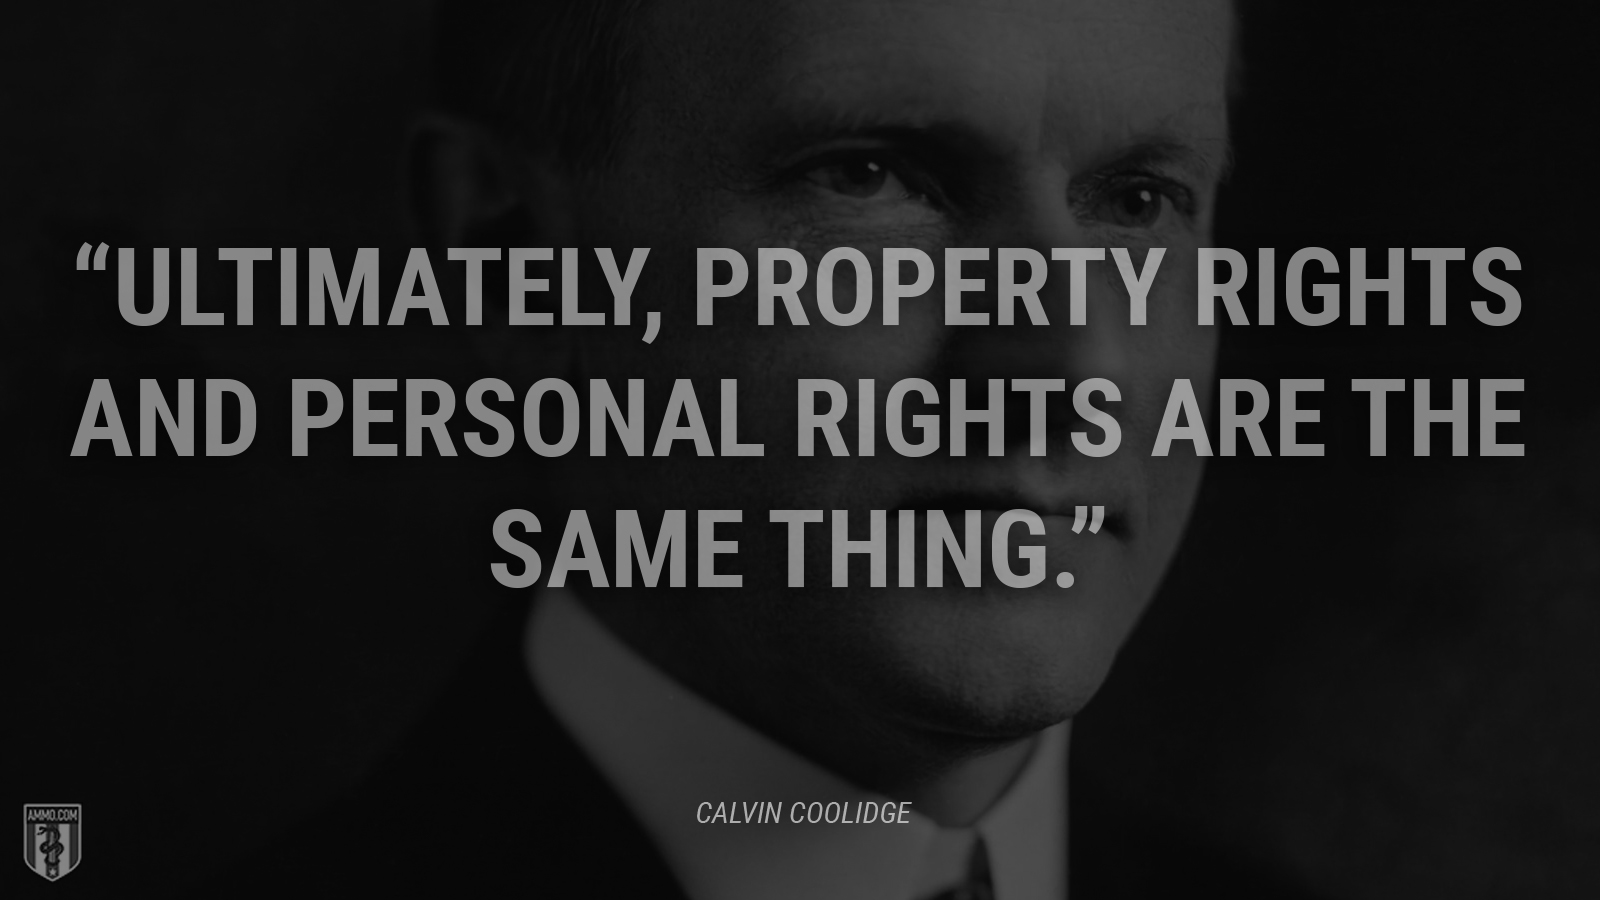 """Ultimately, property rights and personal rights are the same thing."" - Calvin Coolidge"